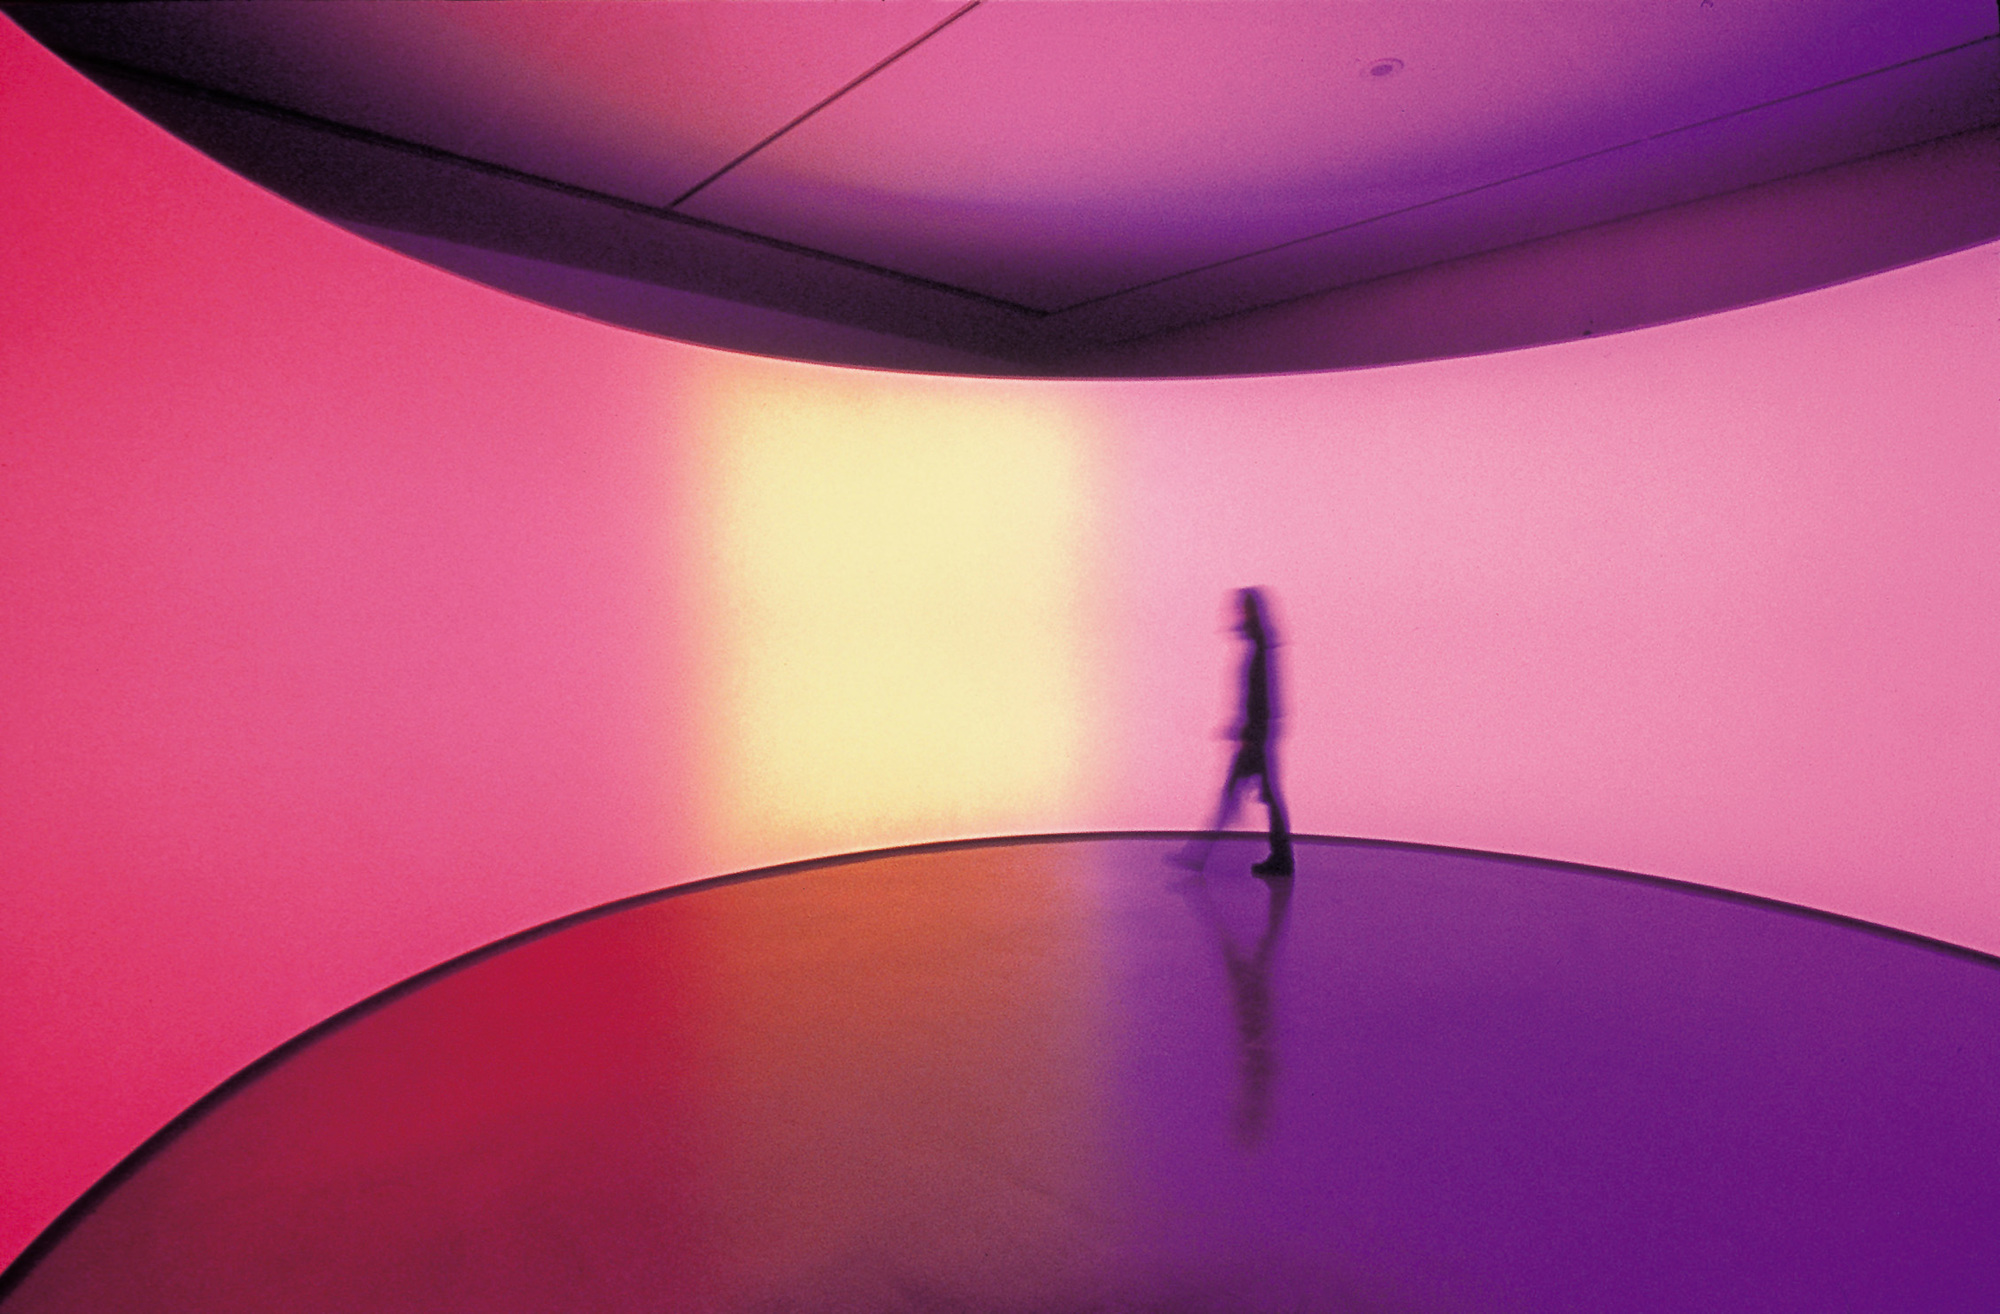 Olafur Elisson : Take Your Time exhibition, MoMA, 2008 Source: https://www.moma.org/calendar/exhibitions/31?locale=en#installation-images